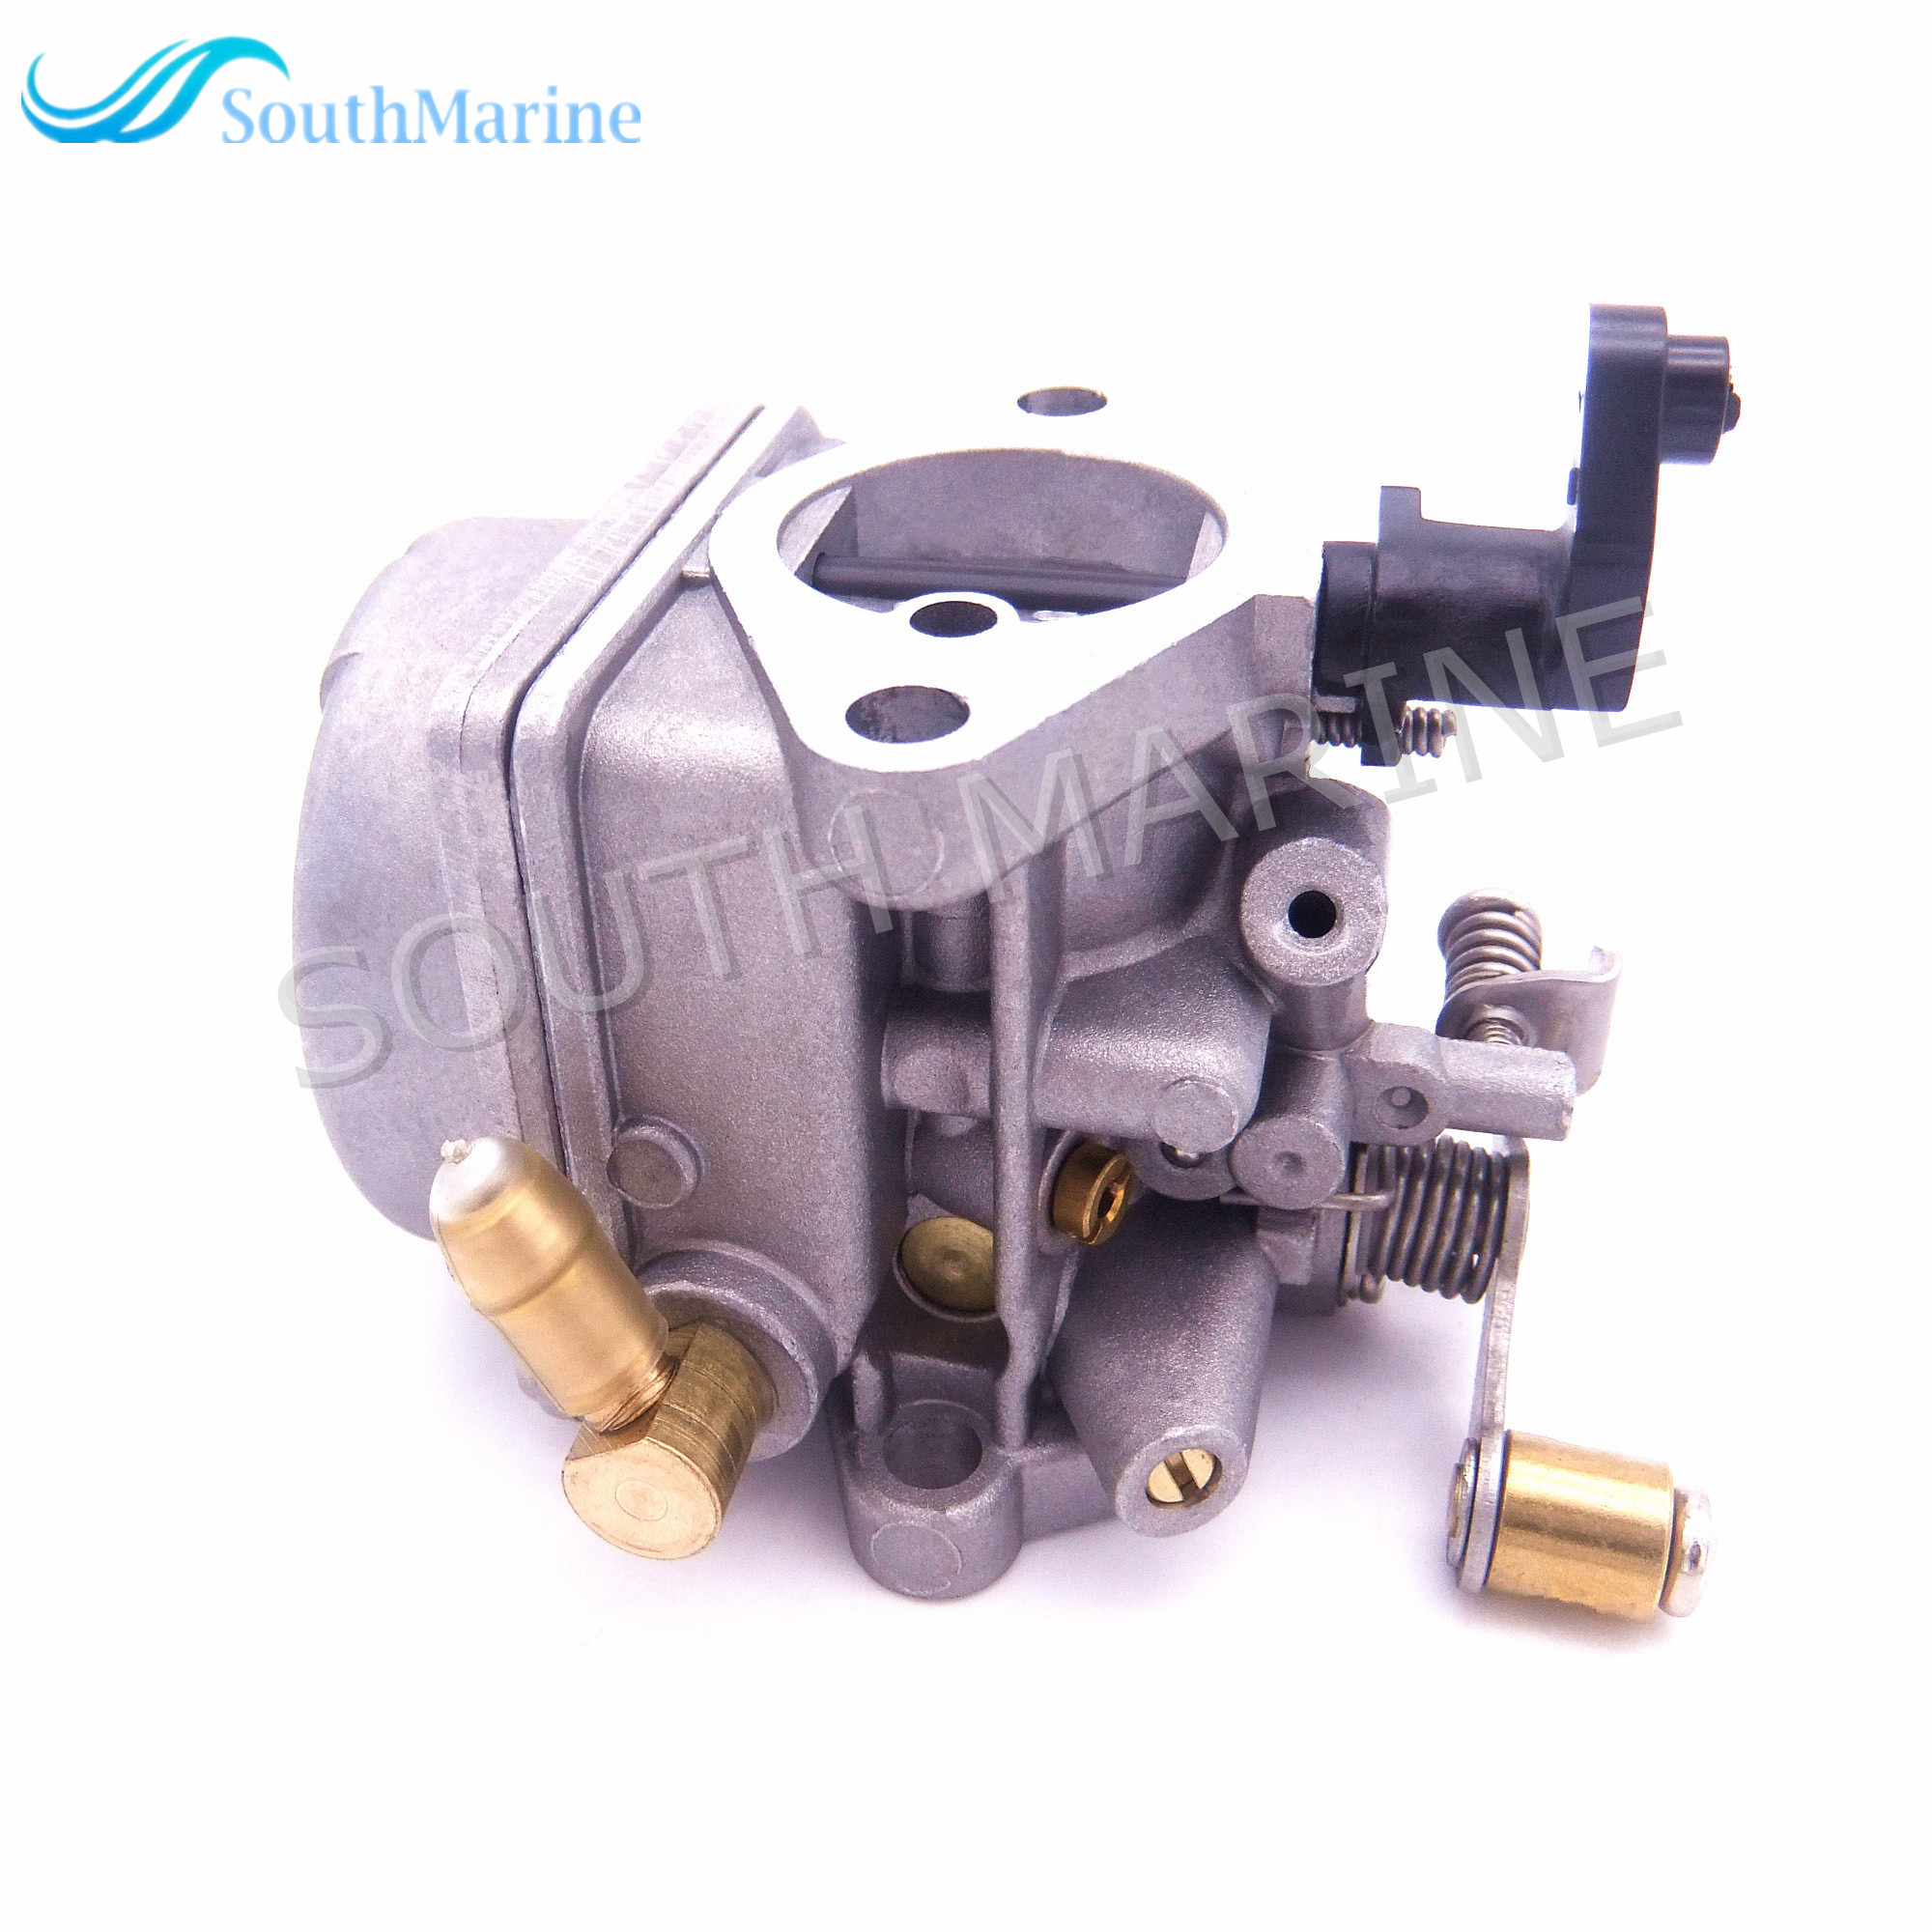 Outboard Engine Carburetor Assy 6BX-14301-10 6BX-14301-11 6BX-14301-00 for Yamaha 4-stroke F6 Boat Motor Free Shipping 66m 14301 11 66m 14301 00 carburetor assy for yamaha 4 stroke 15hp f15 outboard motors